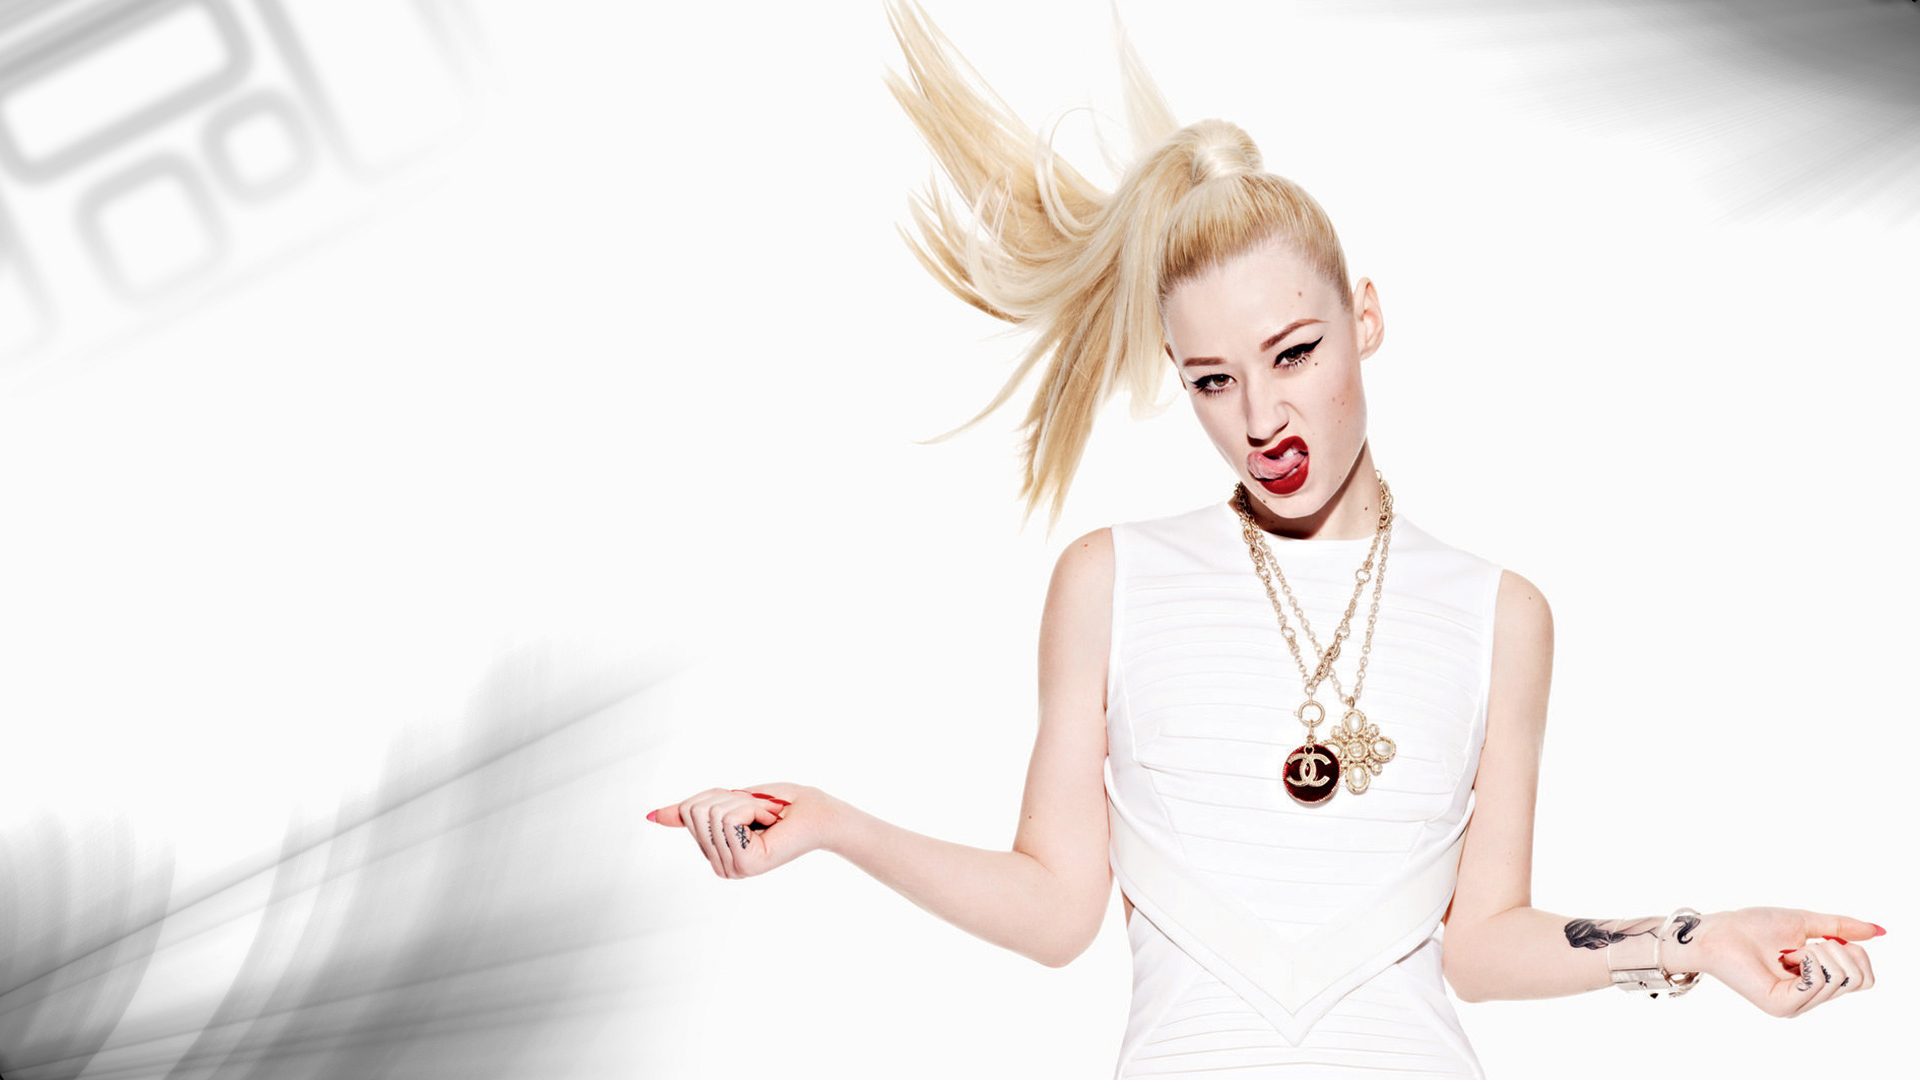 iggy azalea wallpapers images photos pictures backgrounds